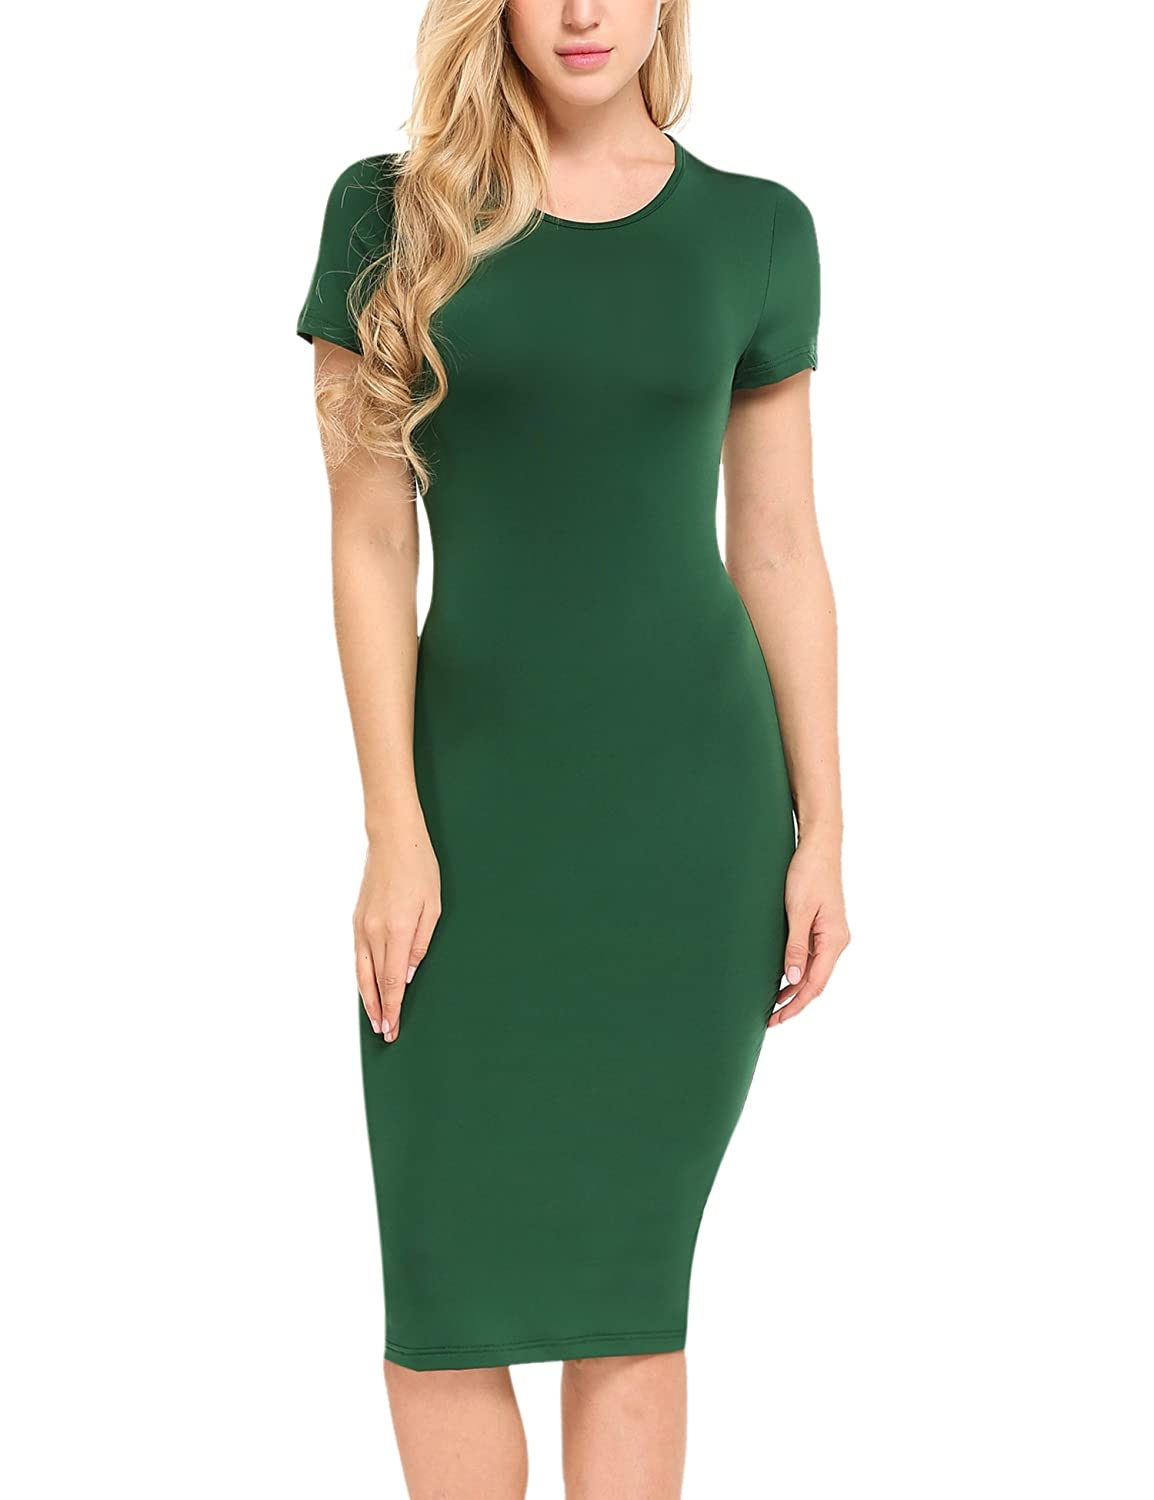 3582a22bbc44 Hotouch Women's Basic Bodycon Solid Slim Fit Short Sleeve O-Neck Midi Dress  at Amazon Women's Clothing store: